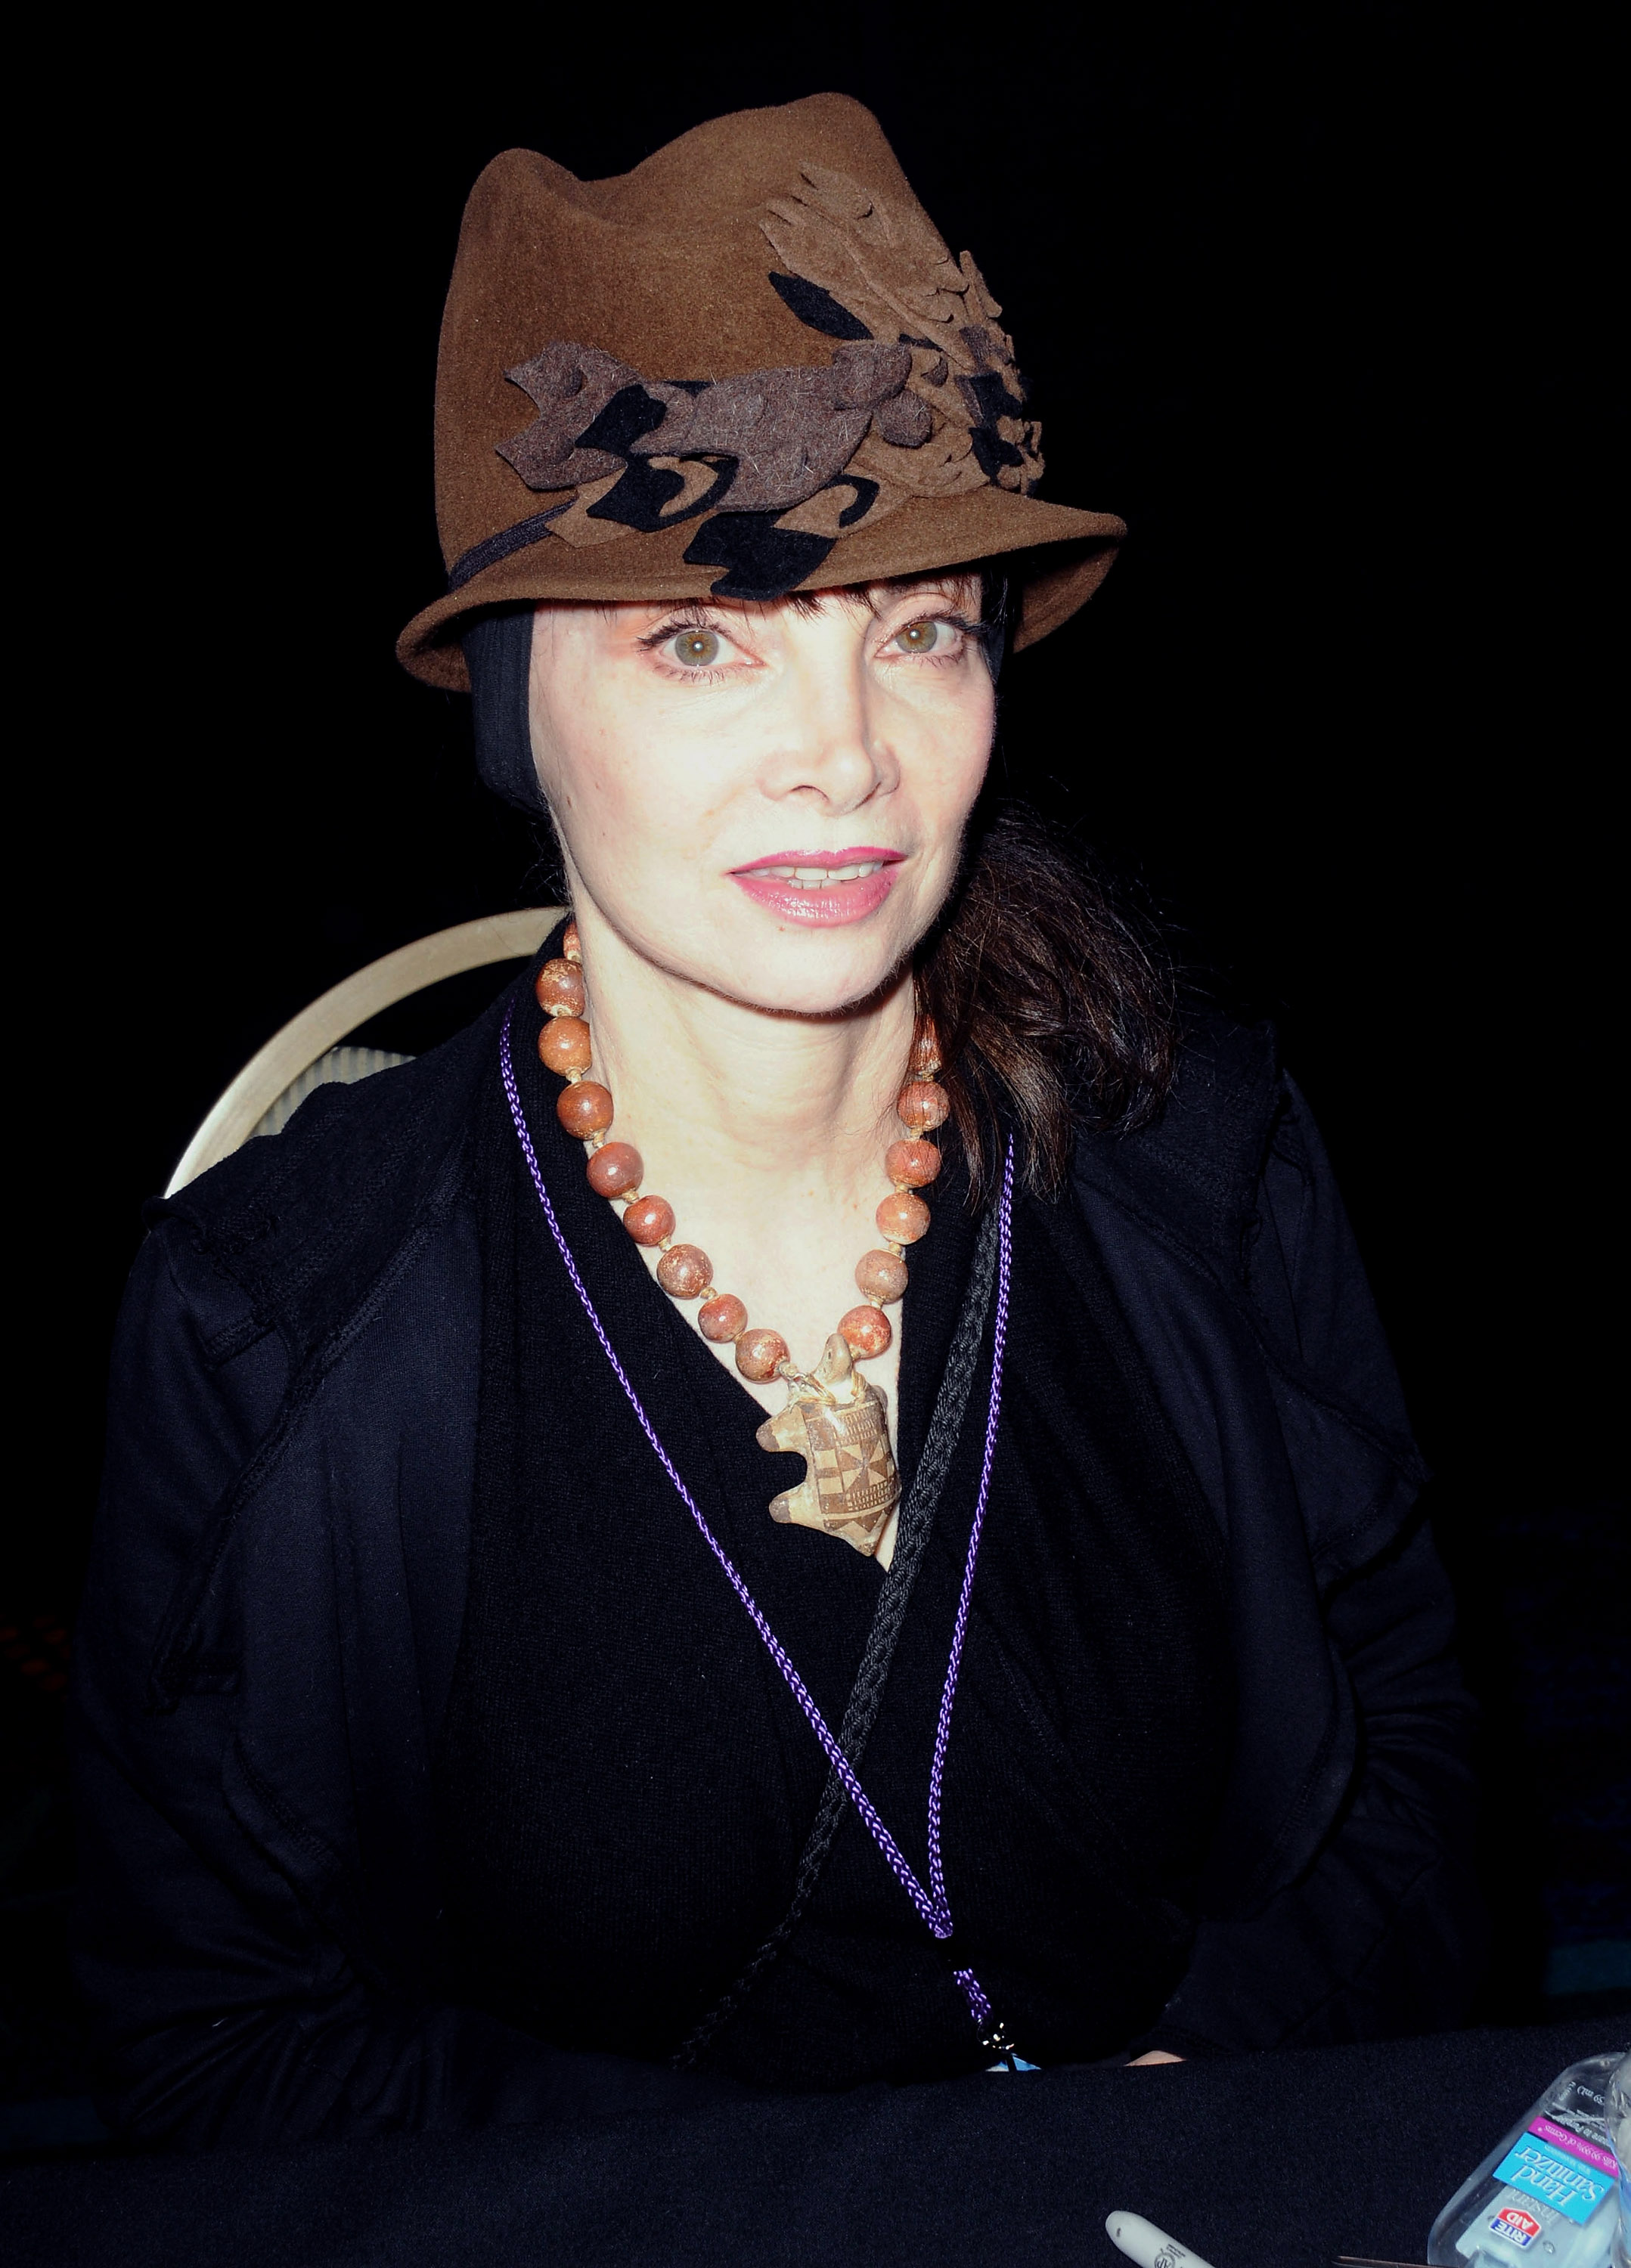 """Mickey"" singer Toni Basil today [photo: Albert L. Ortega/Getty Images, 2012]"